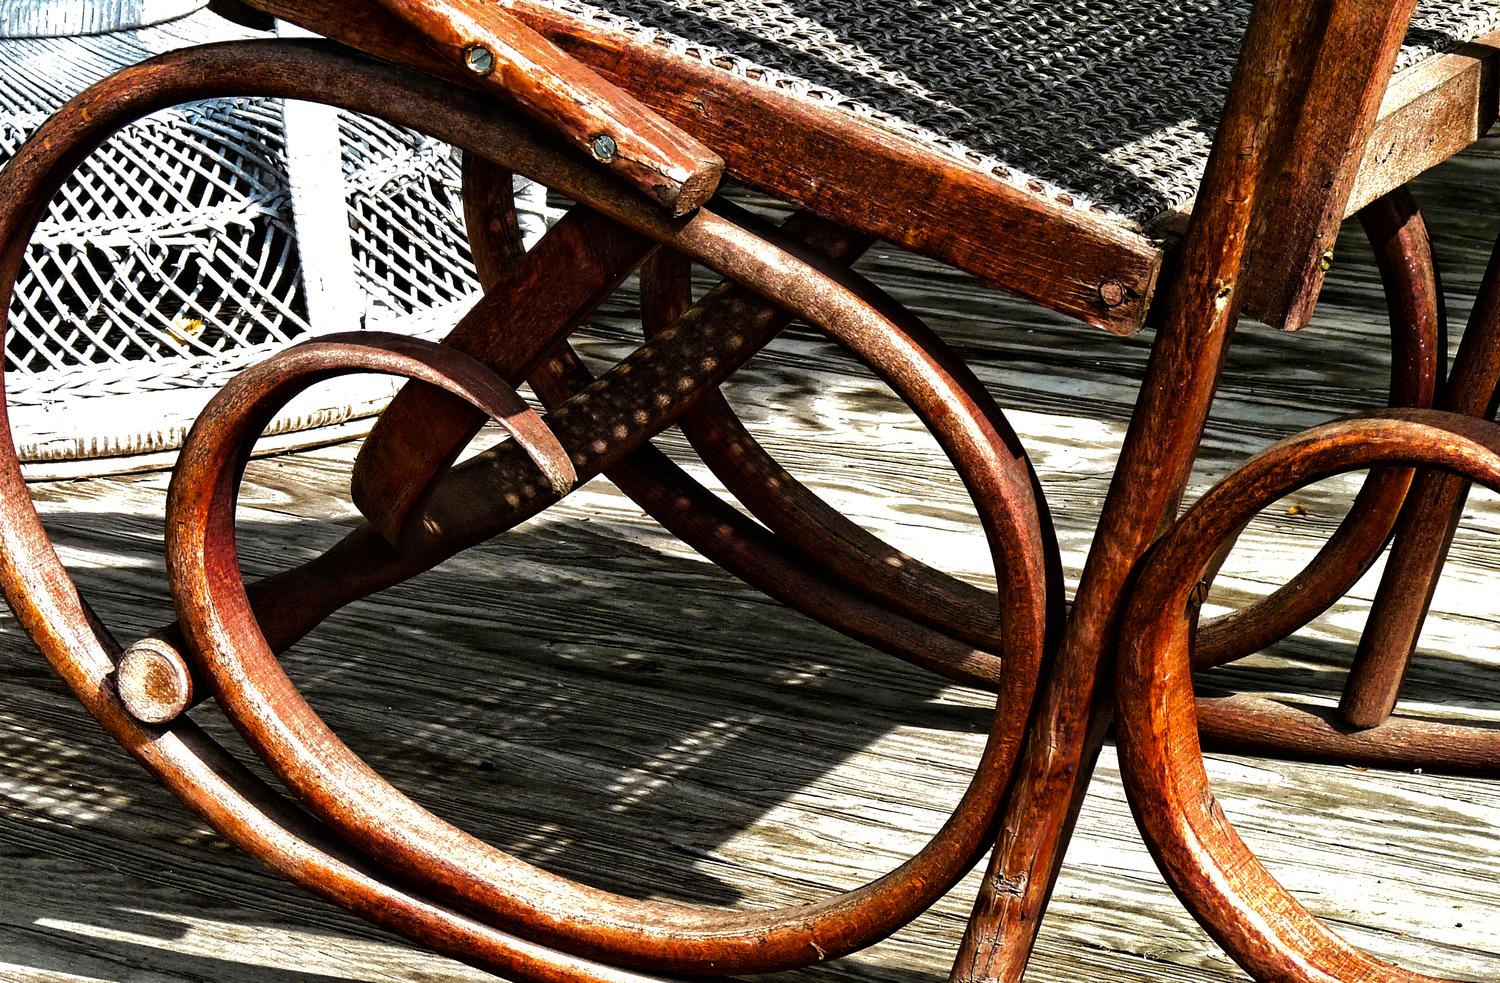 - Bentwood rocker on a porch - Berryville Virginia - Panasonic DMC-FZ28 - Tony Karp, design, art, photography, techno-impressionist, techno-impressionism, aerial photography , drone , drones , dji , mavic pro , video , 3D printing - Books -